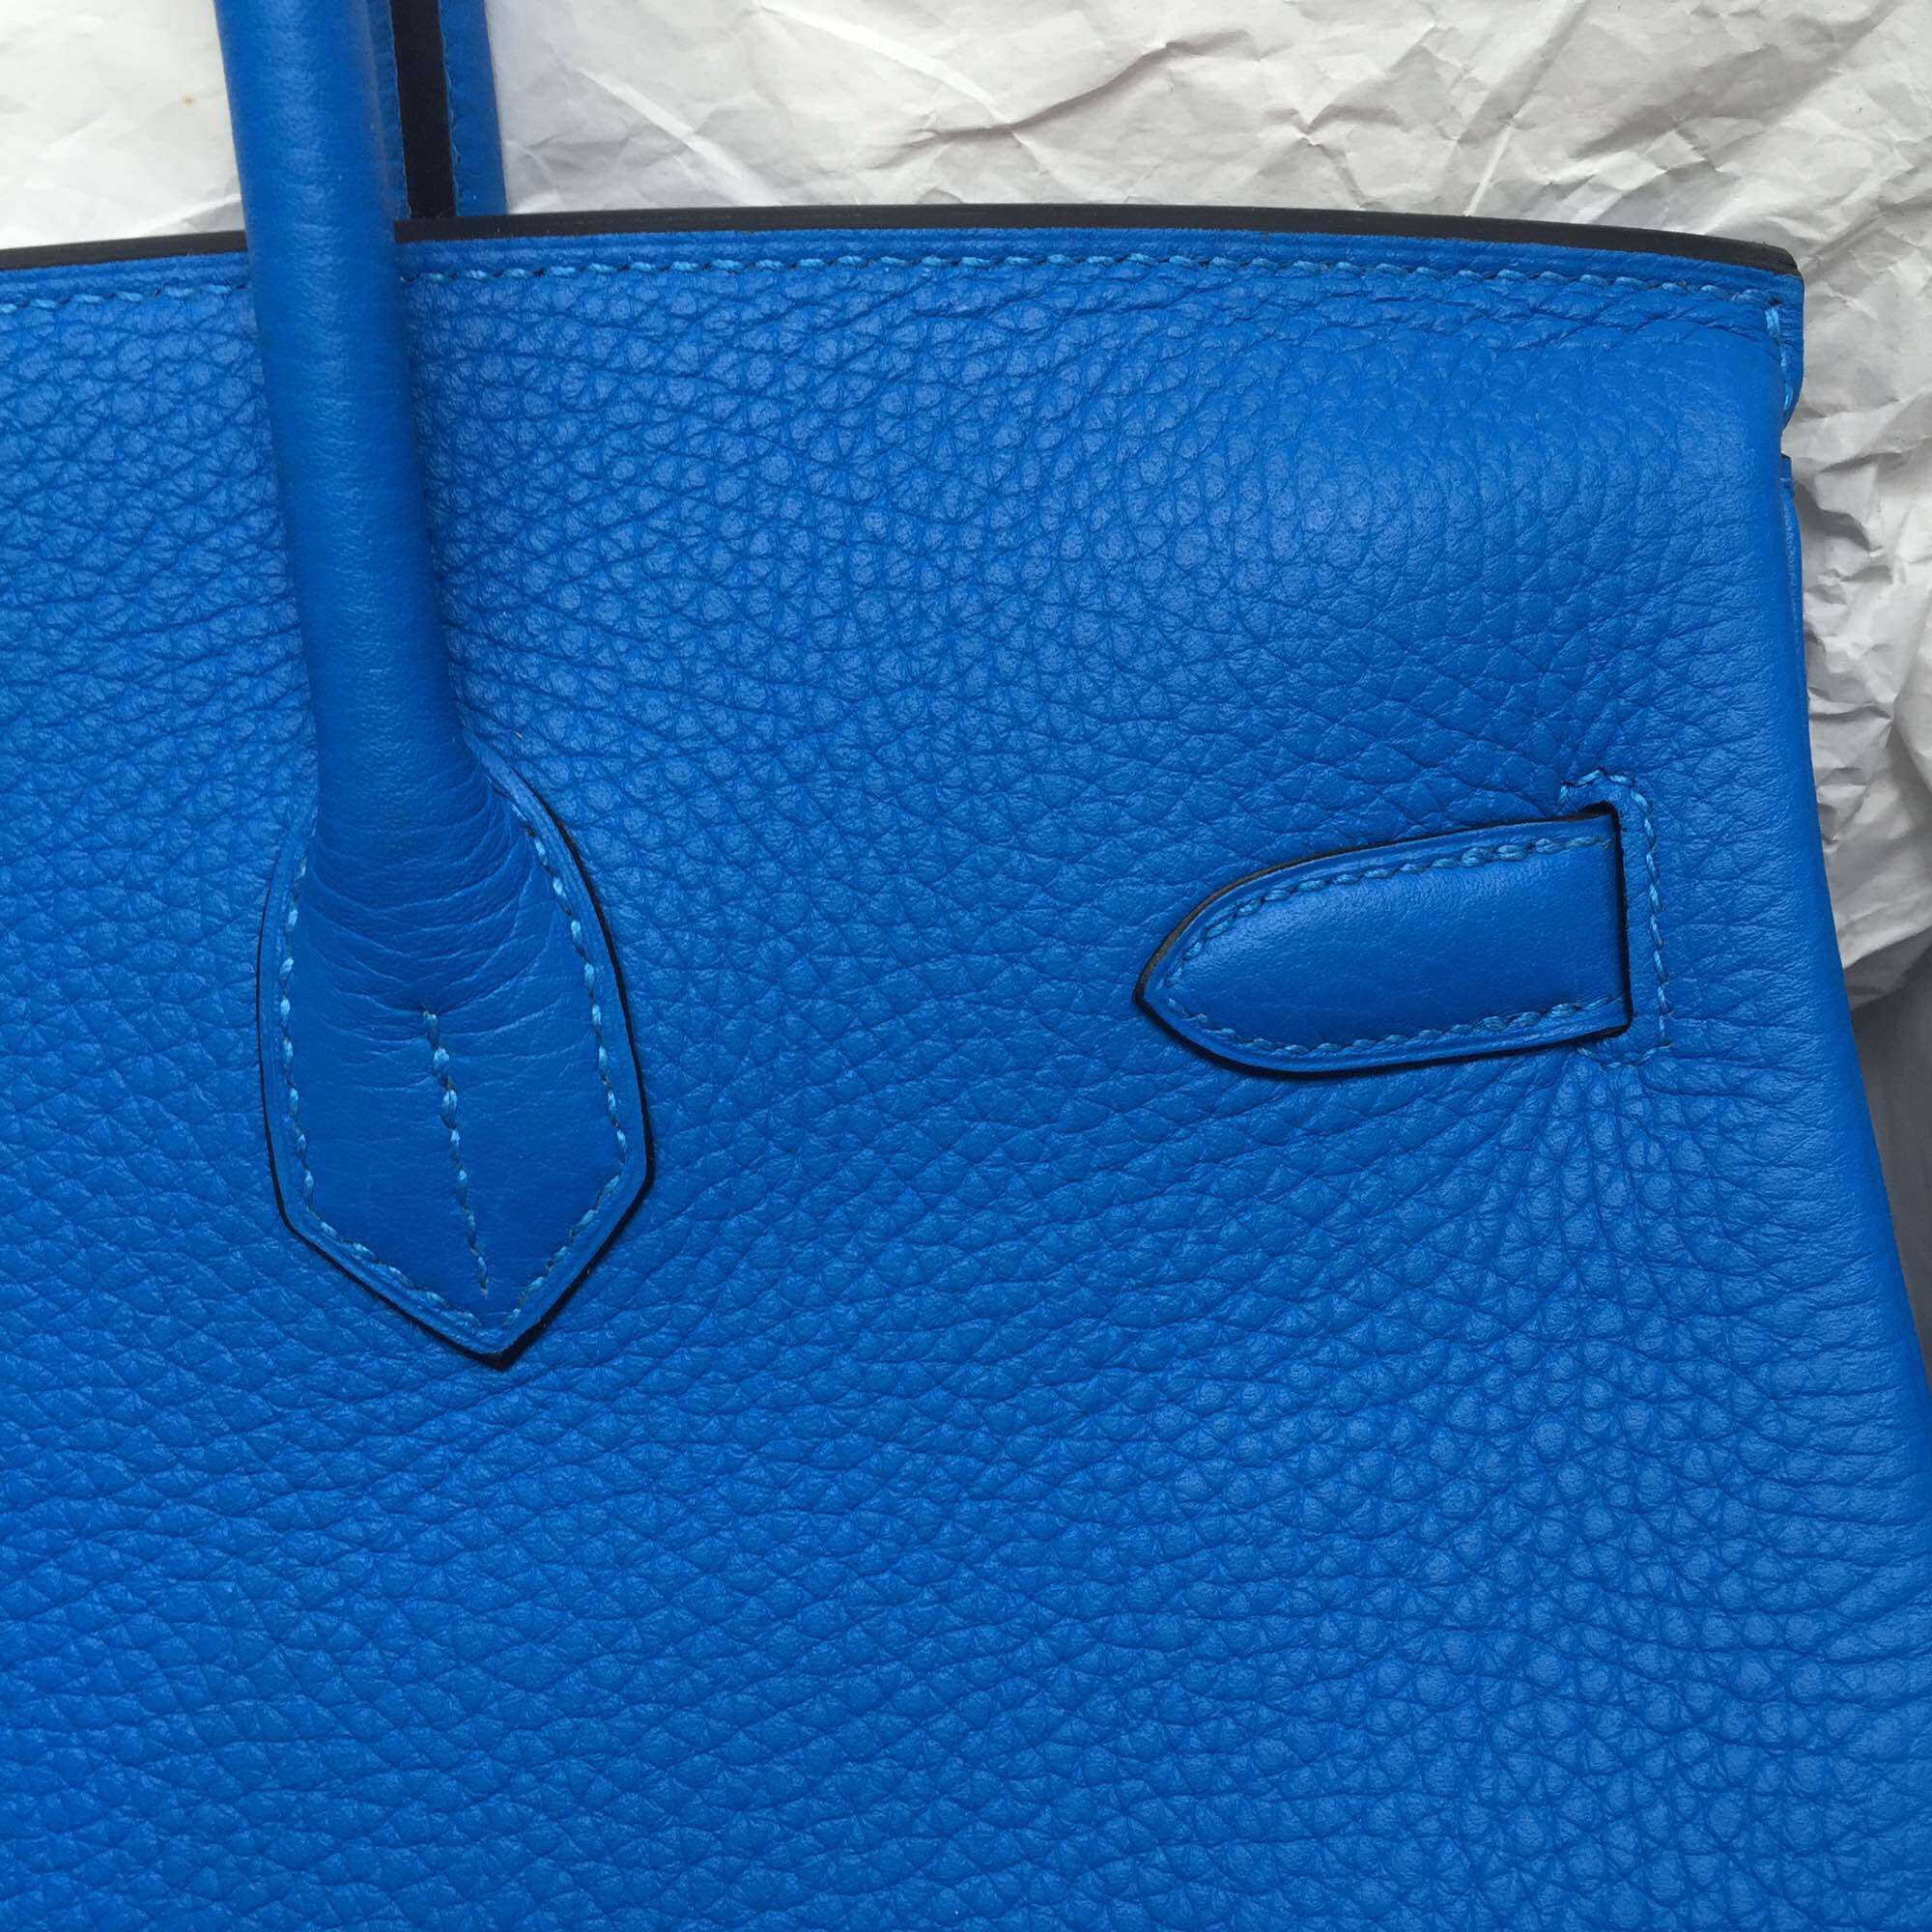 New Fashion Blue Hydra France Togo Leather Hermes Birkin Bag 35cm